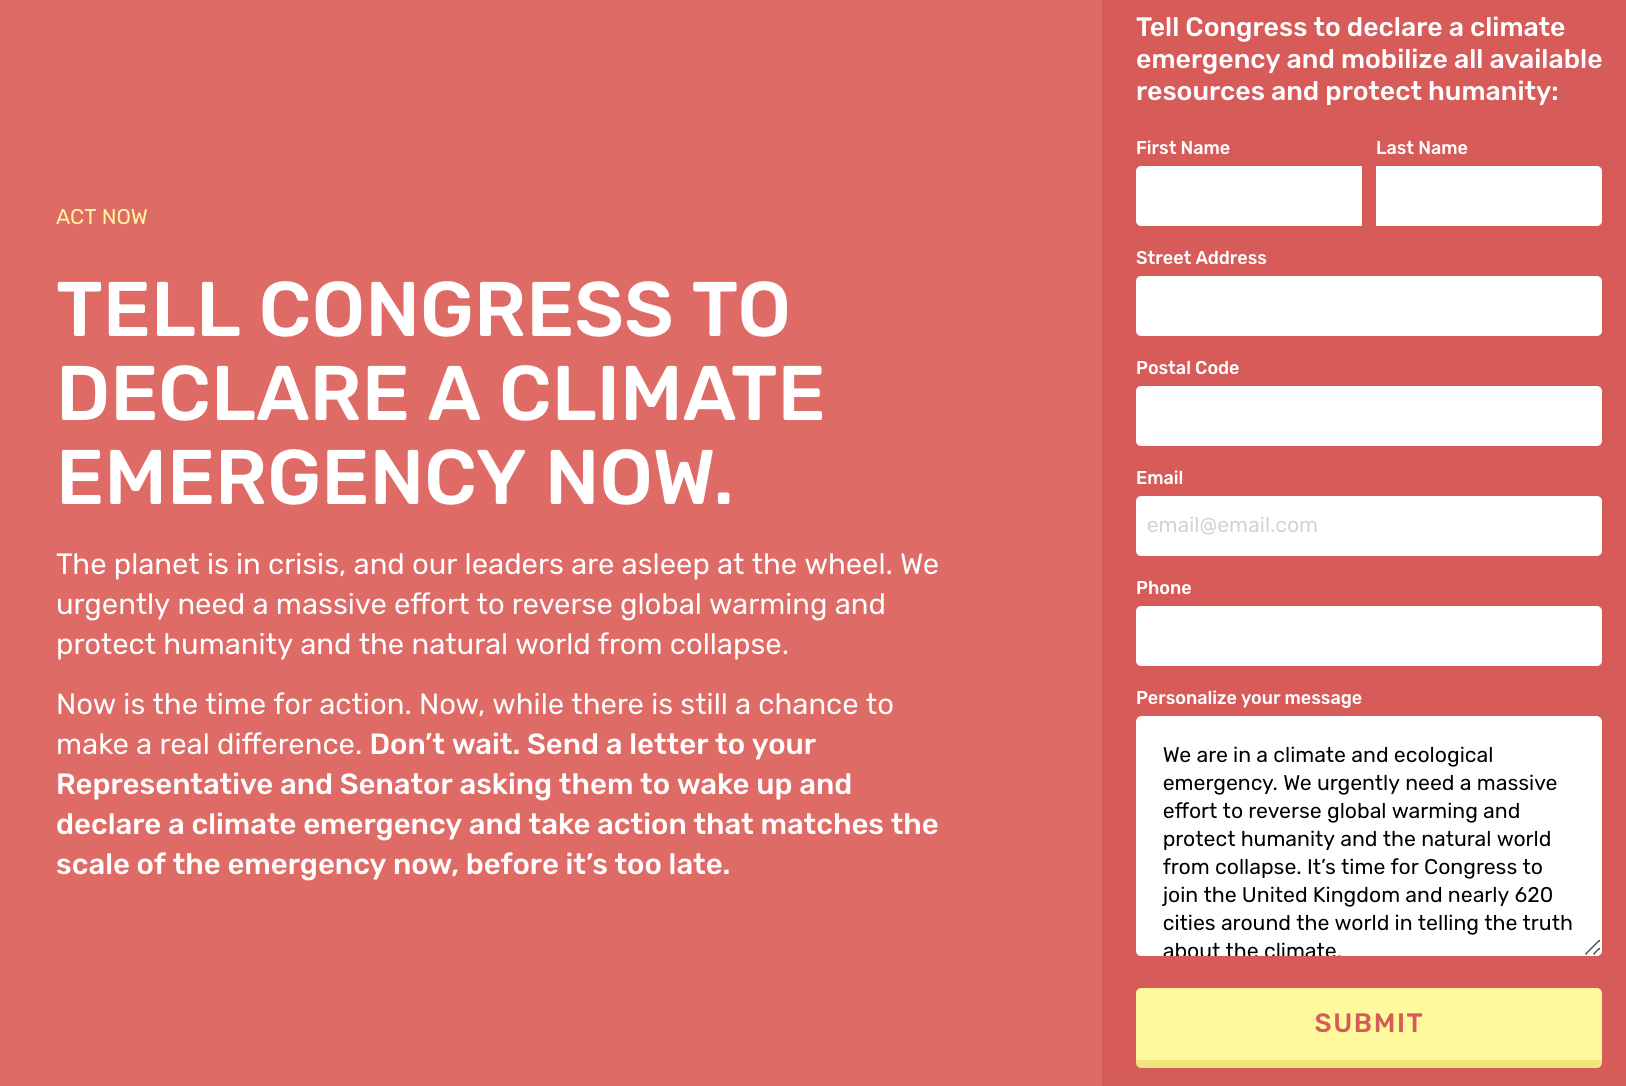 The online petition and partner information can be found at  ClimateEmergency.US